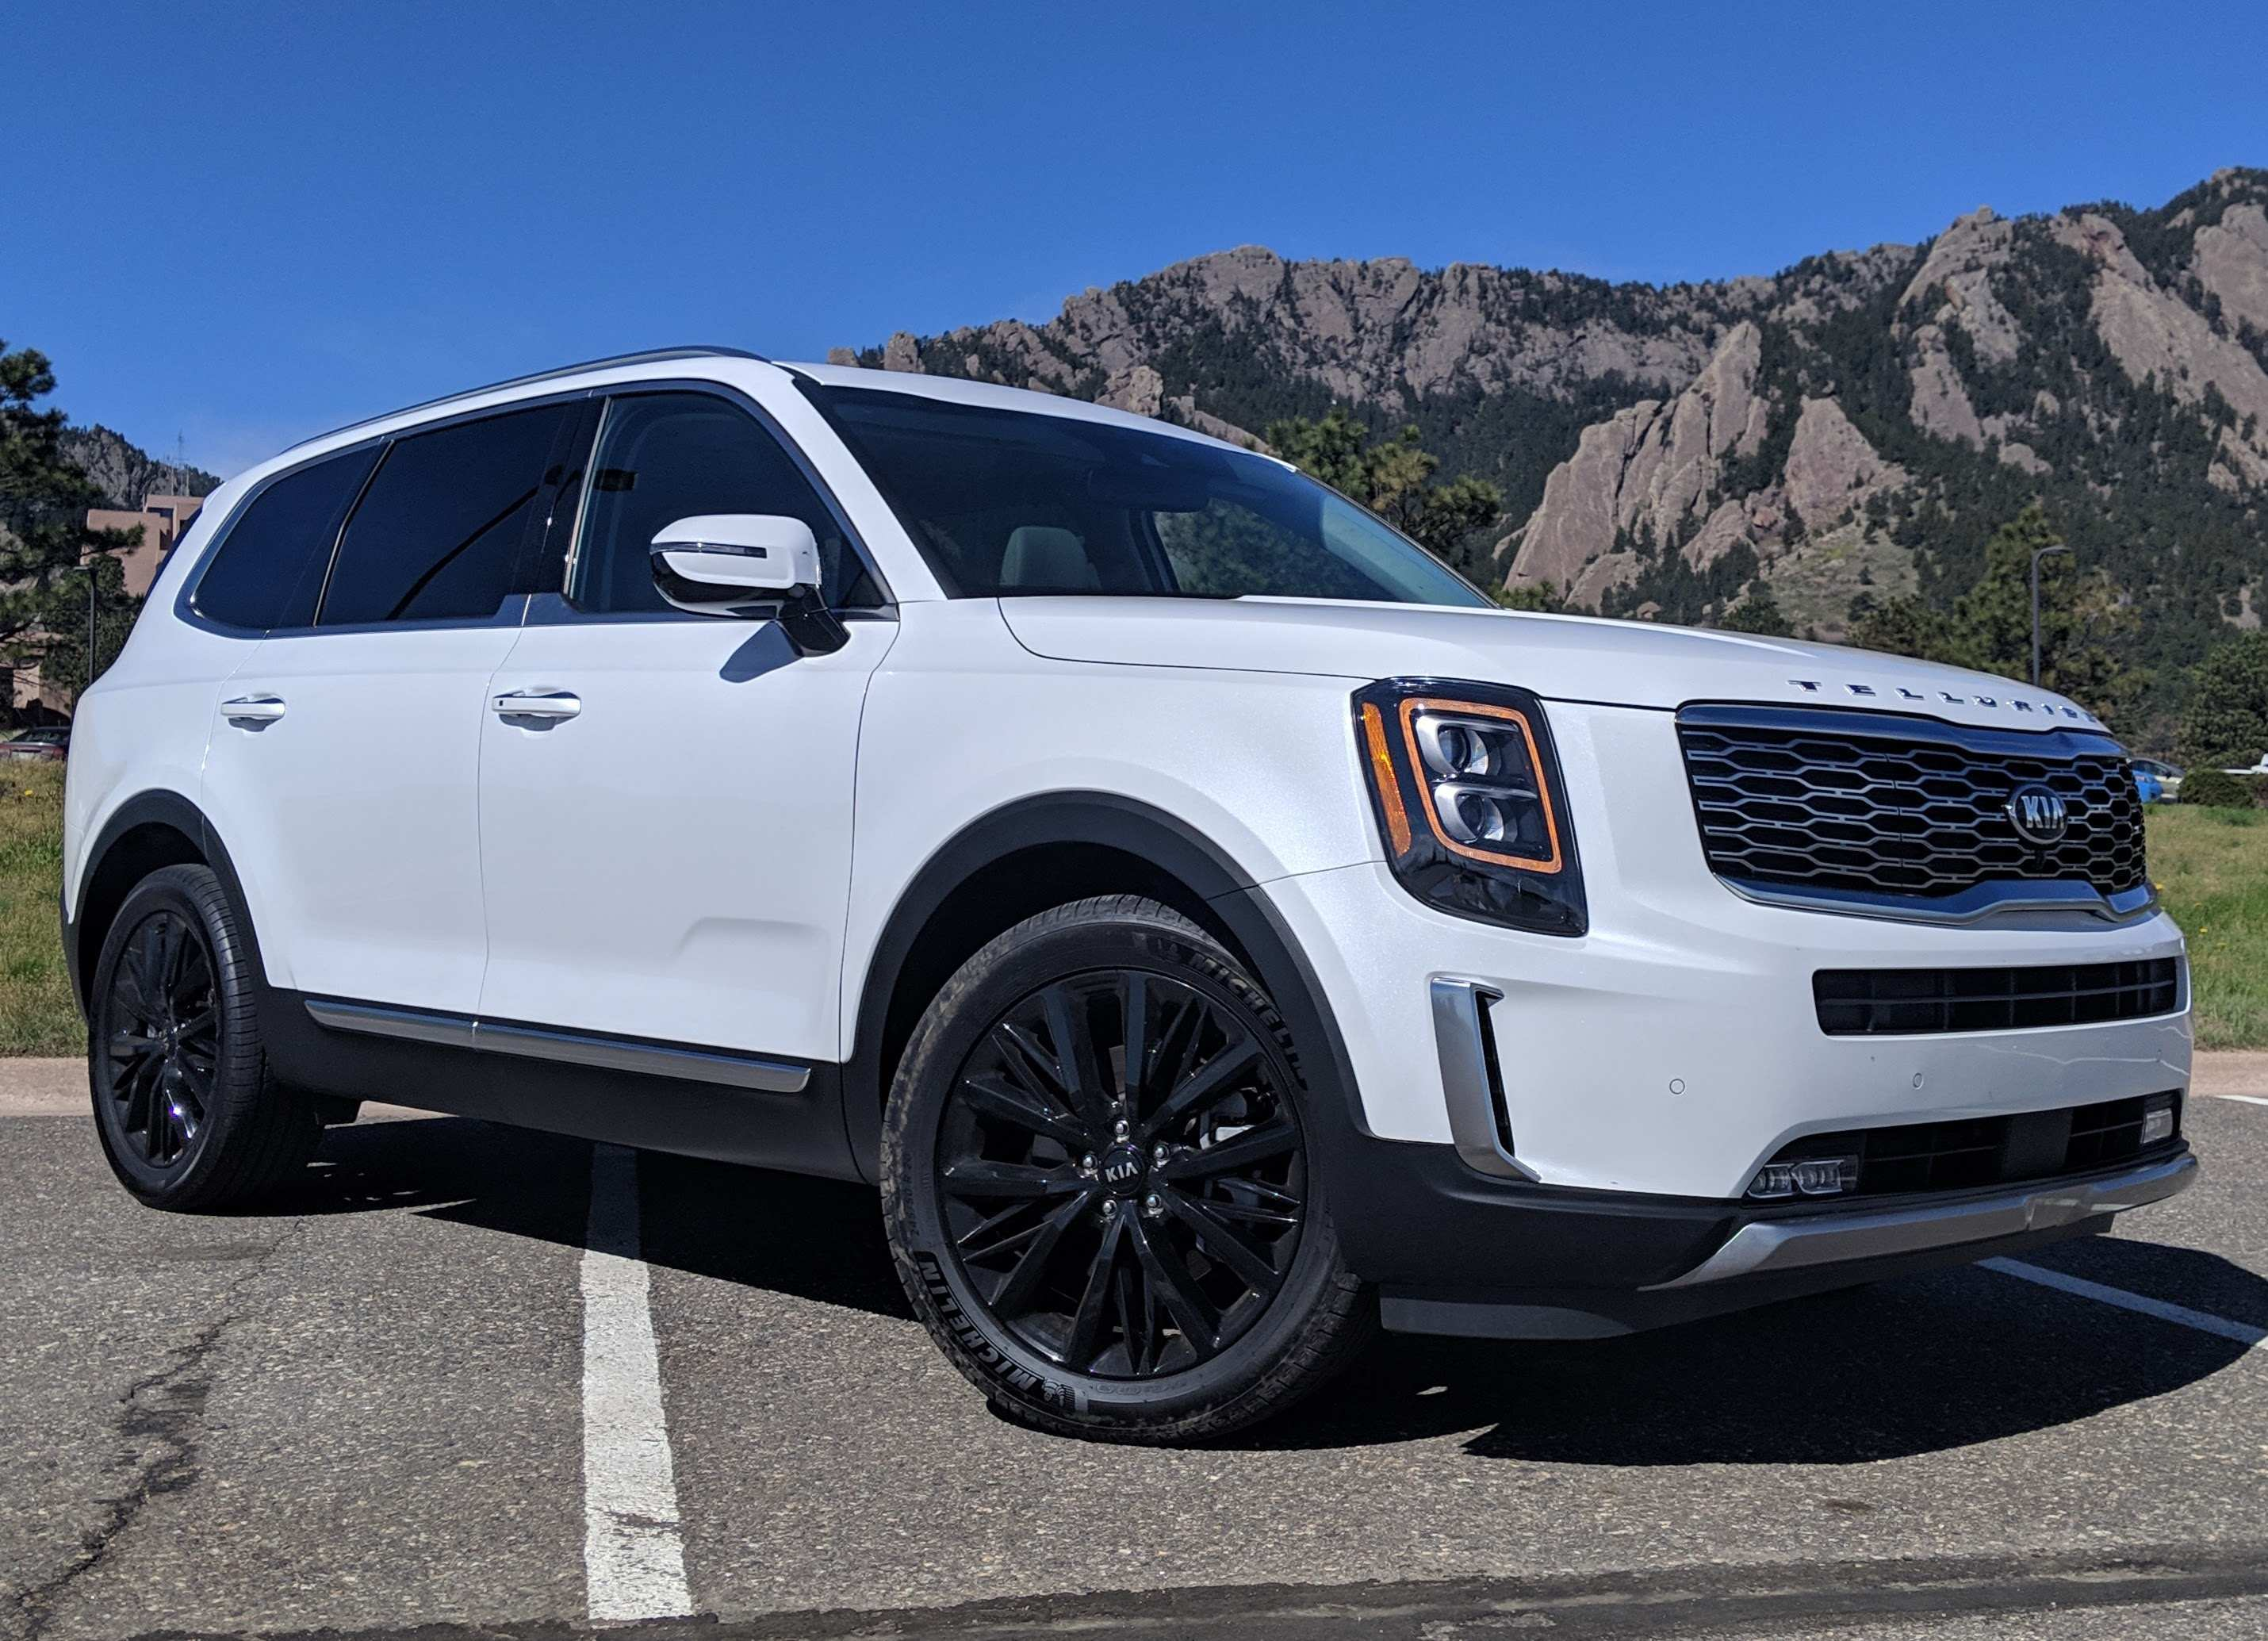 25 Gallery of 2020 Kia Telluride Video Style by 2020 Kia Telluride Video